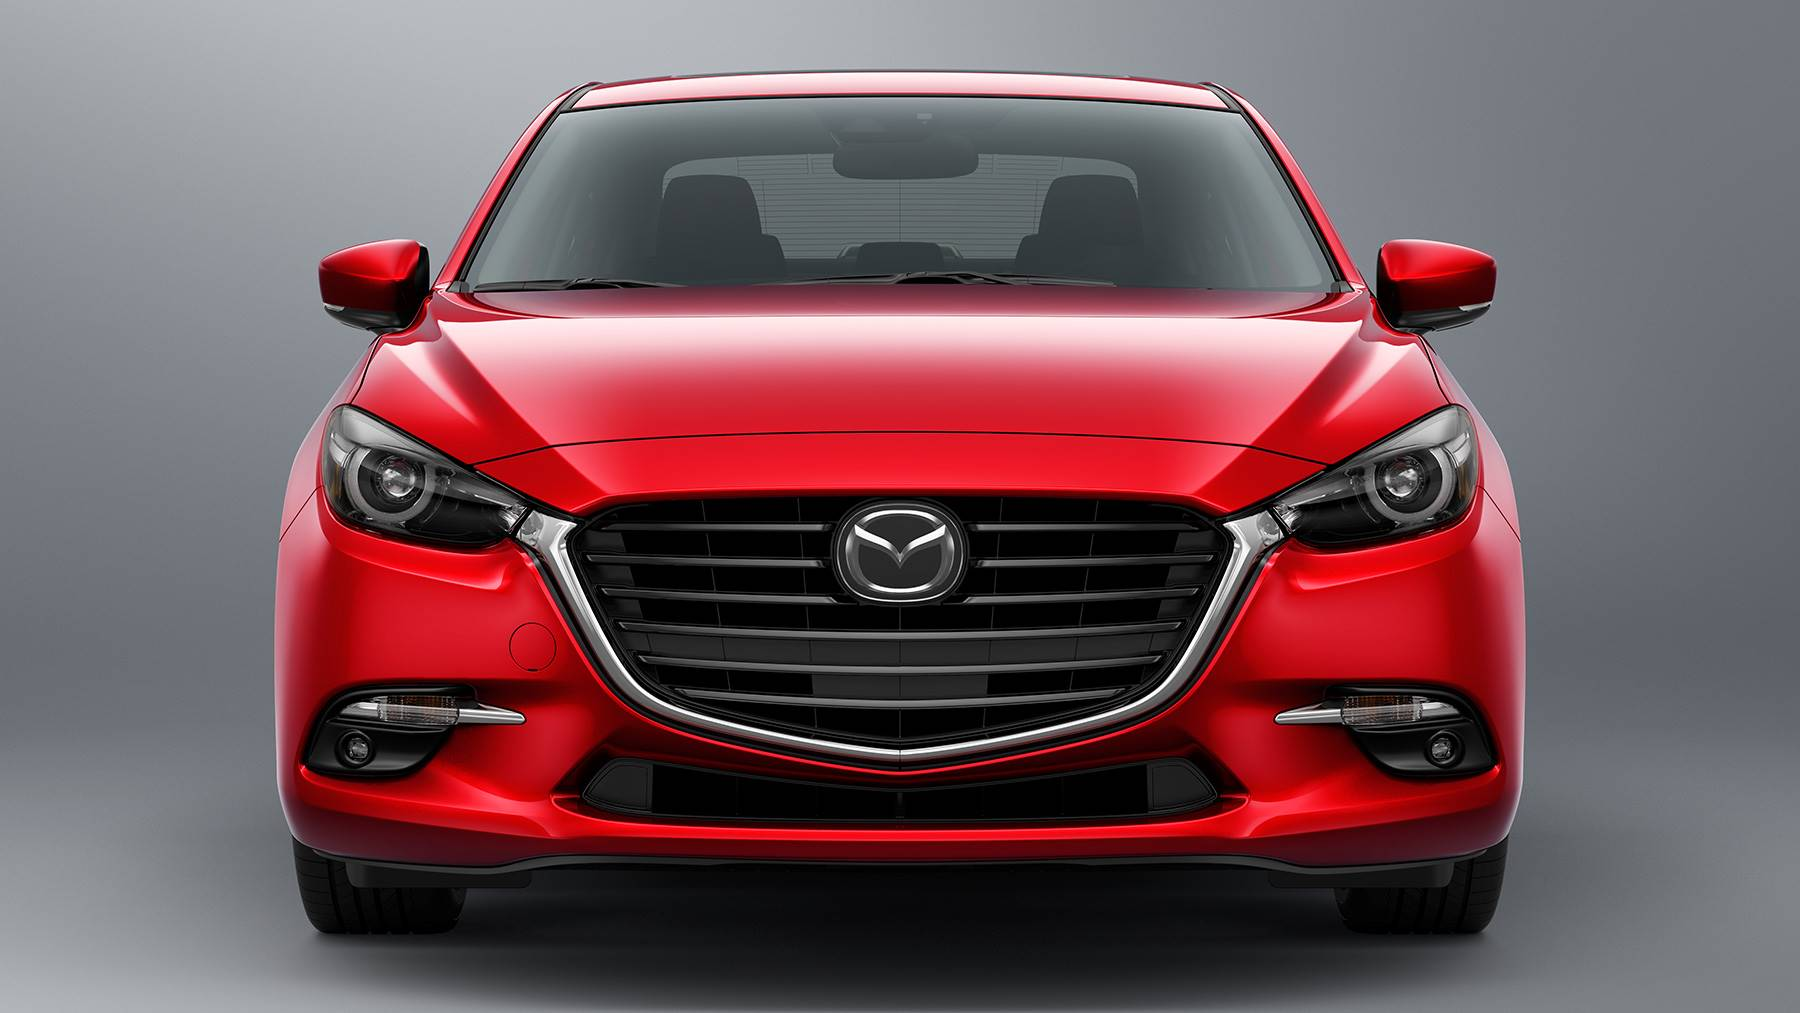 2018 Mazda3 Leasing in San Antonio, TX